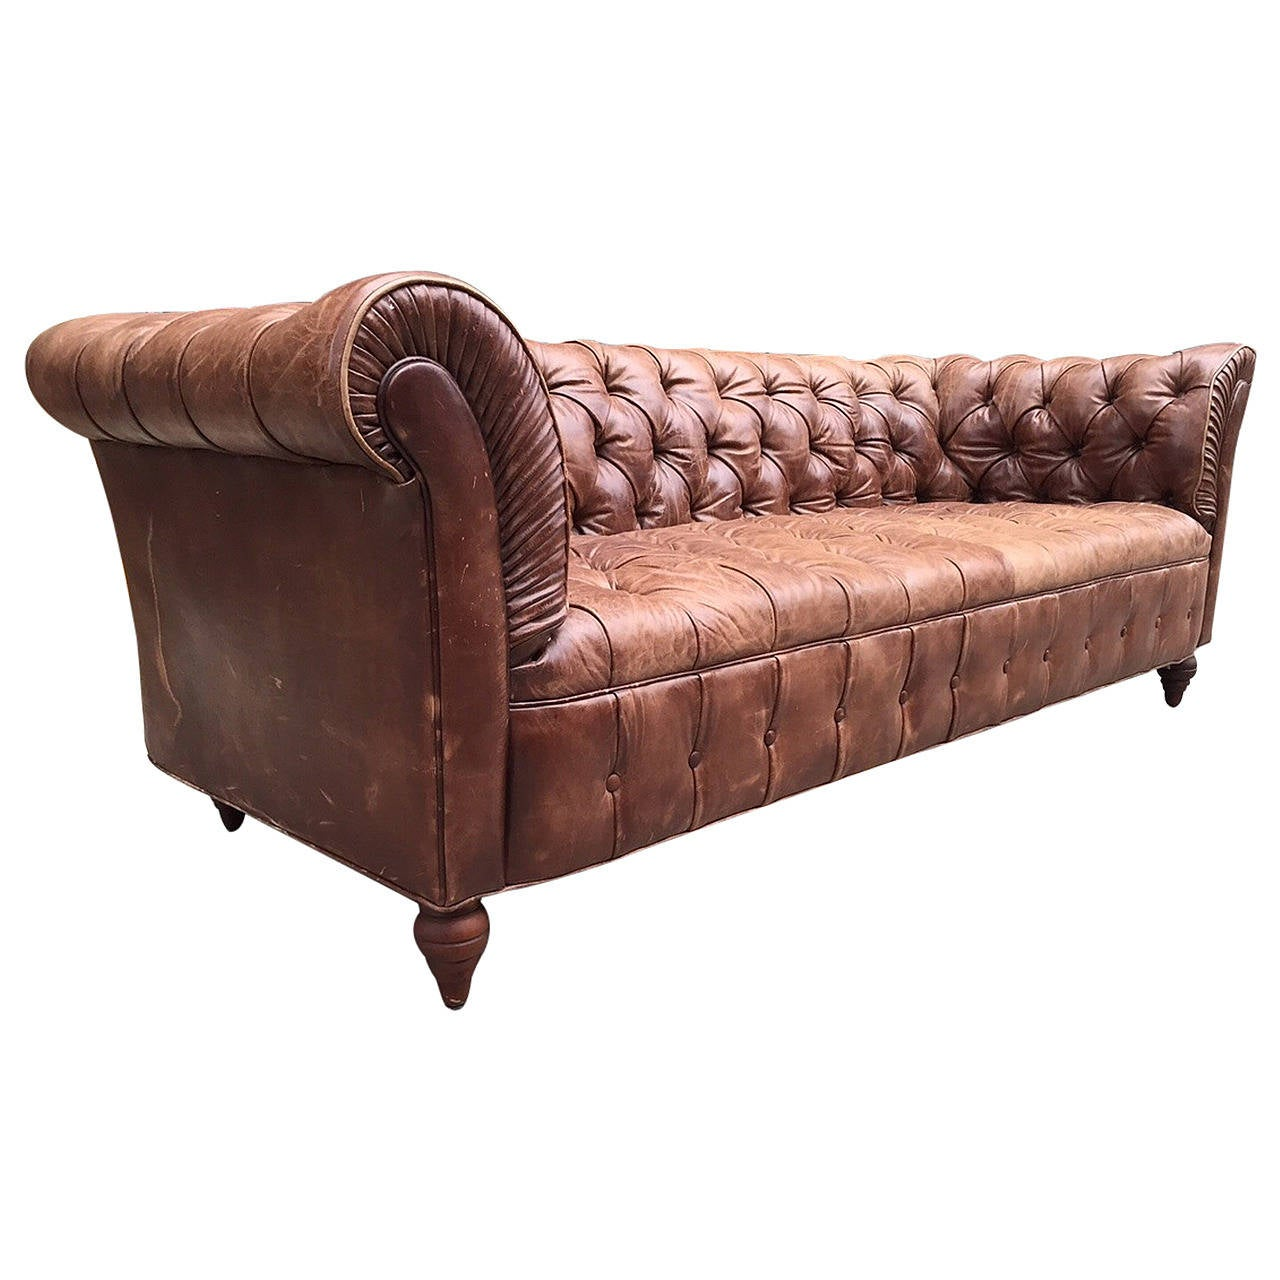 Vintage leather chesterfield sofa for sale at 1stdibs Leather chesterfield loveseat